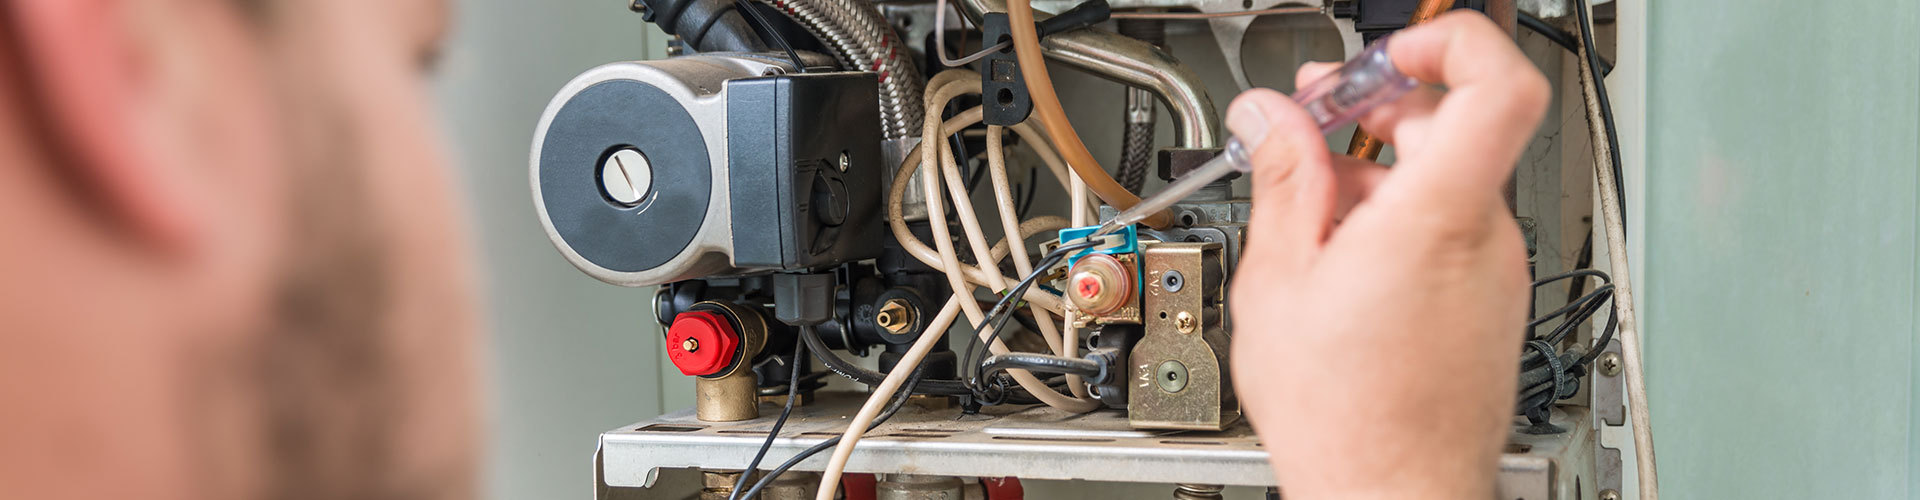 Central Heating Repairs Upminster, Boiler Repairs Esex, Boiler Servicing Upminster